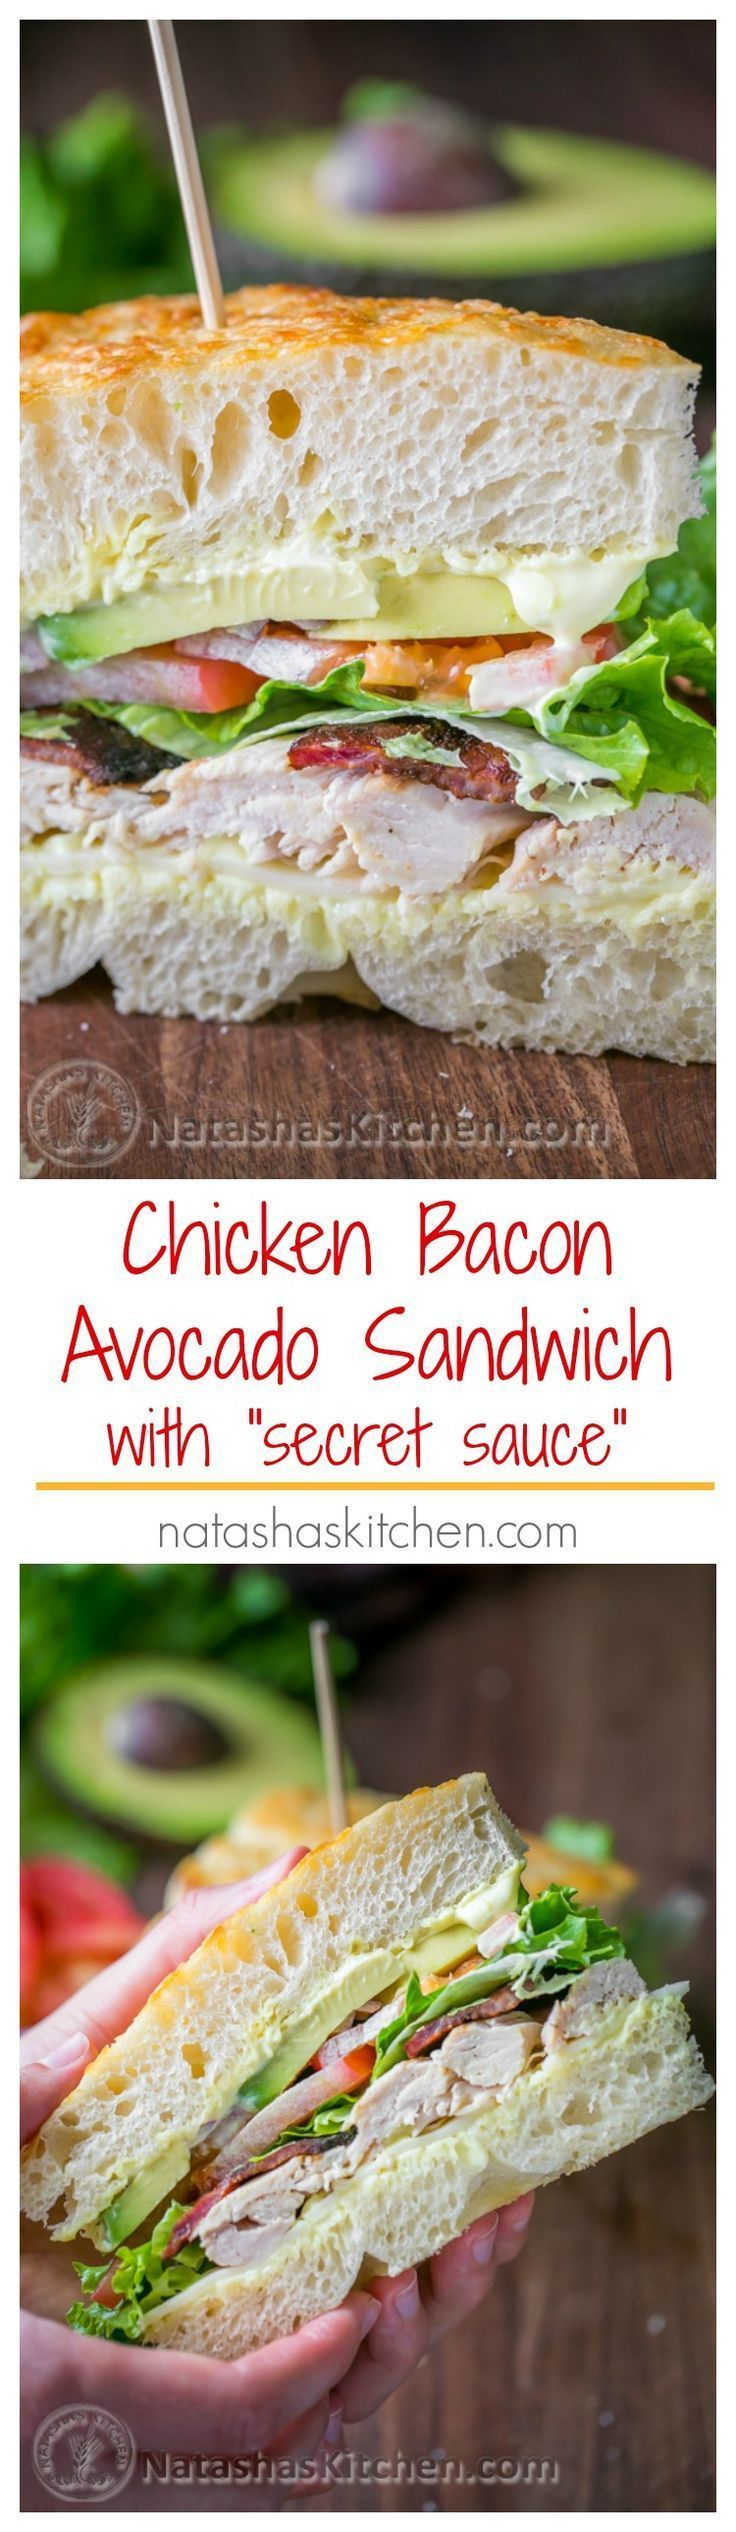 This is a copycat of Kneader's turkey bacon avocado sandwich except we subbed the turkey for rotisserie chicken. The copycat sauce was just as good and has just 3 simple ingredients!